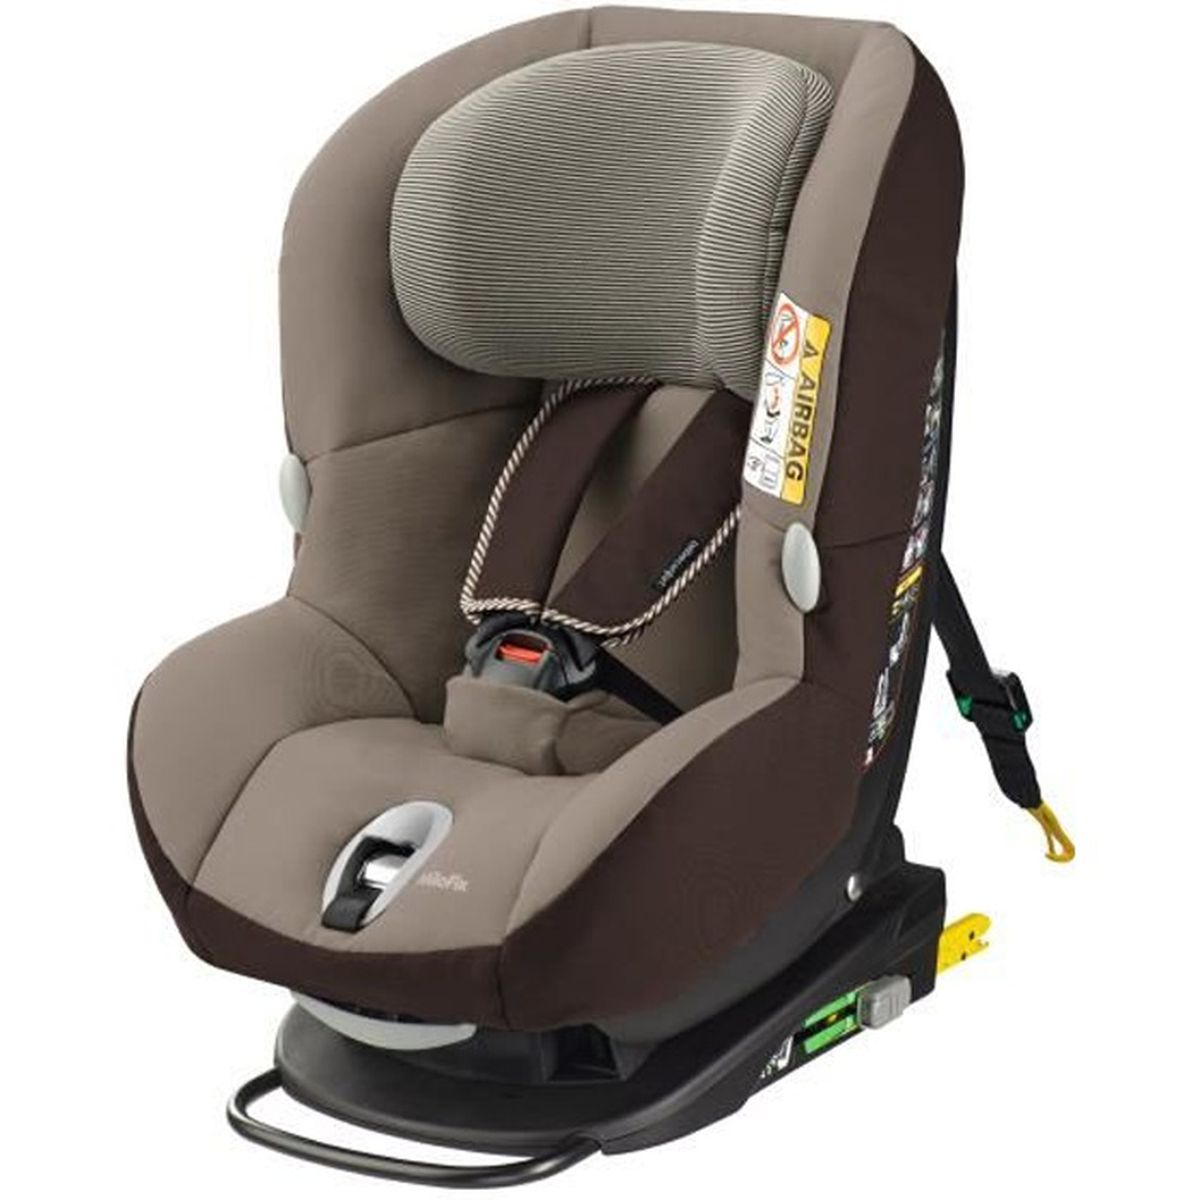 bebe confort si ge auto milofix isofix groupe 0 1 brown earth 2015 achat vente. Black Bedroom Furniture Sets. Home Design Ideas